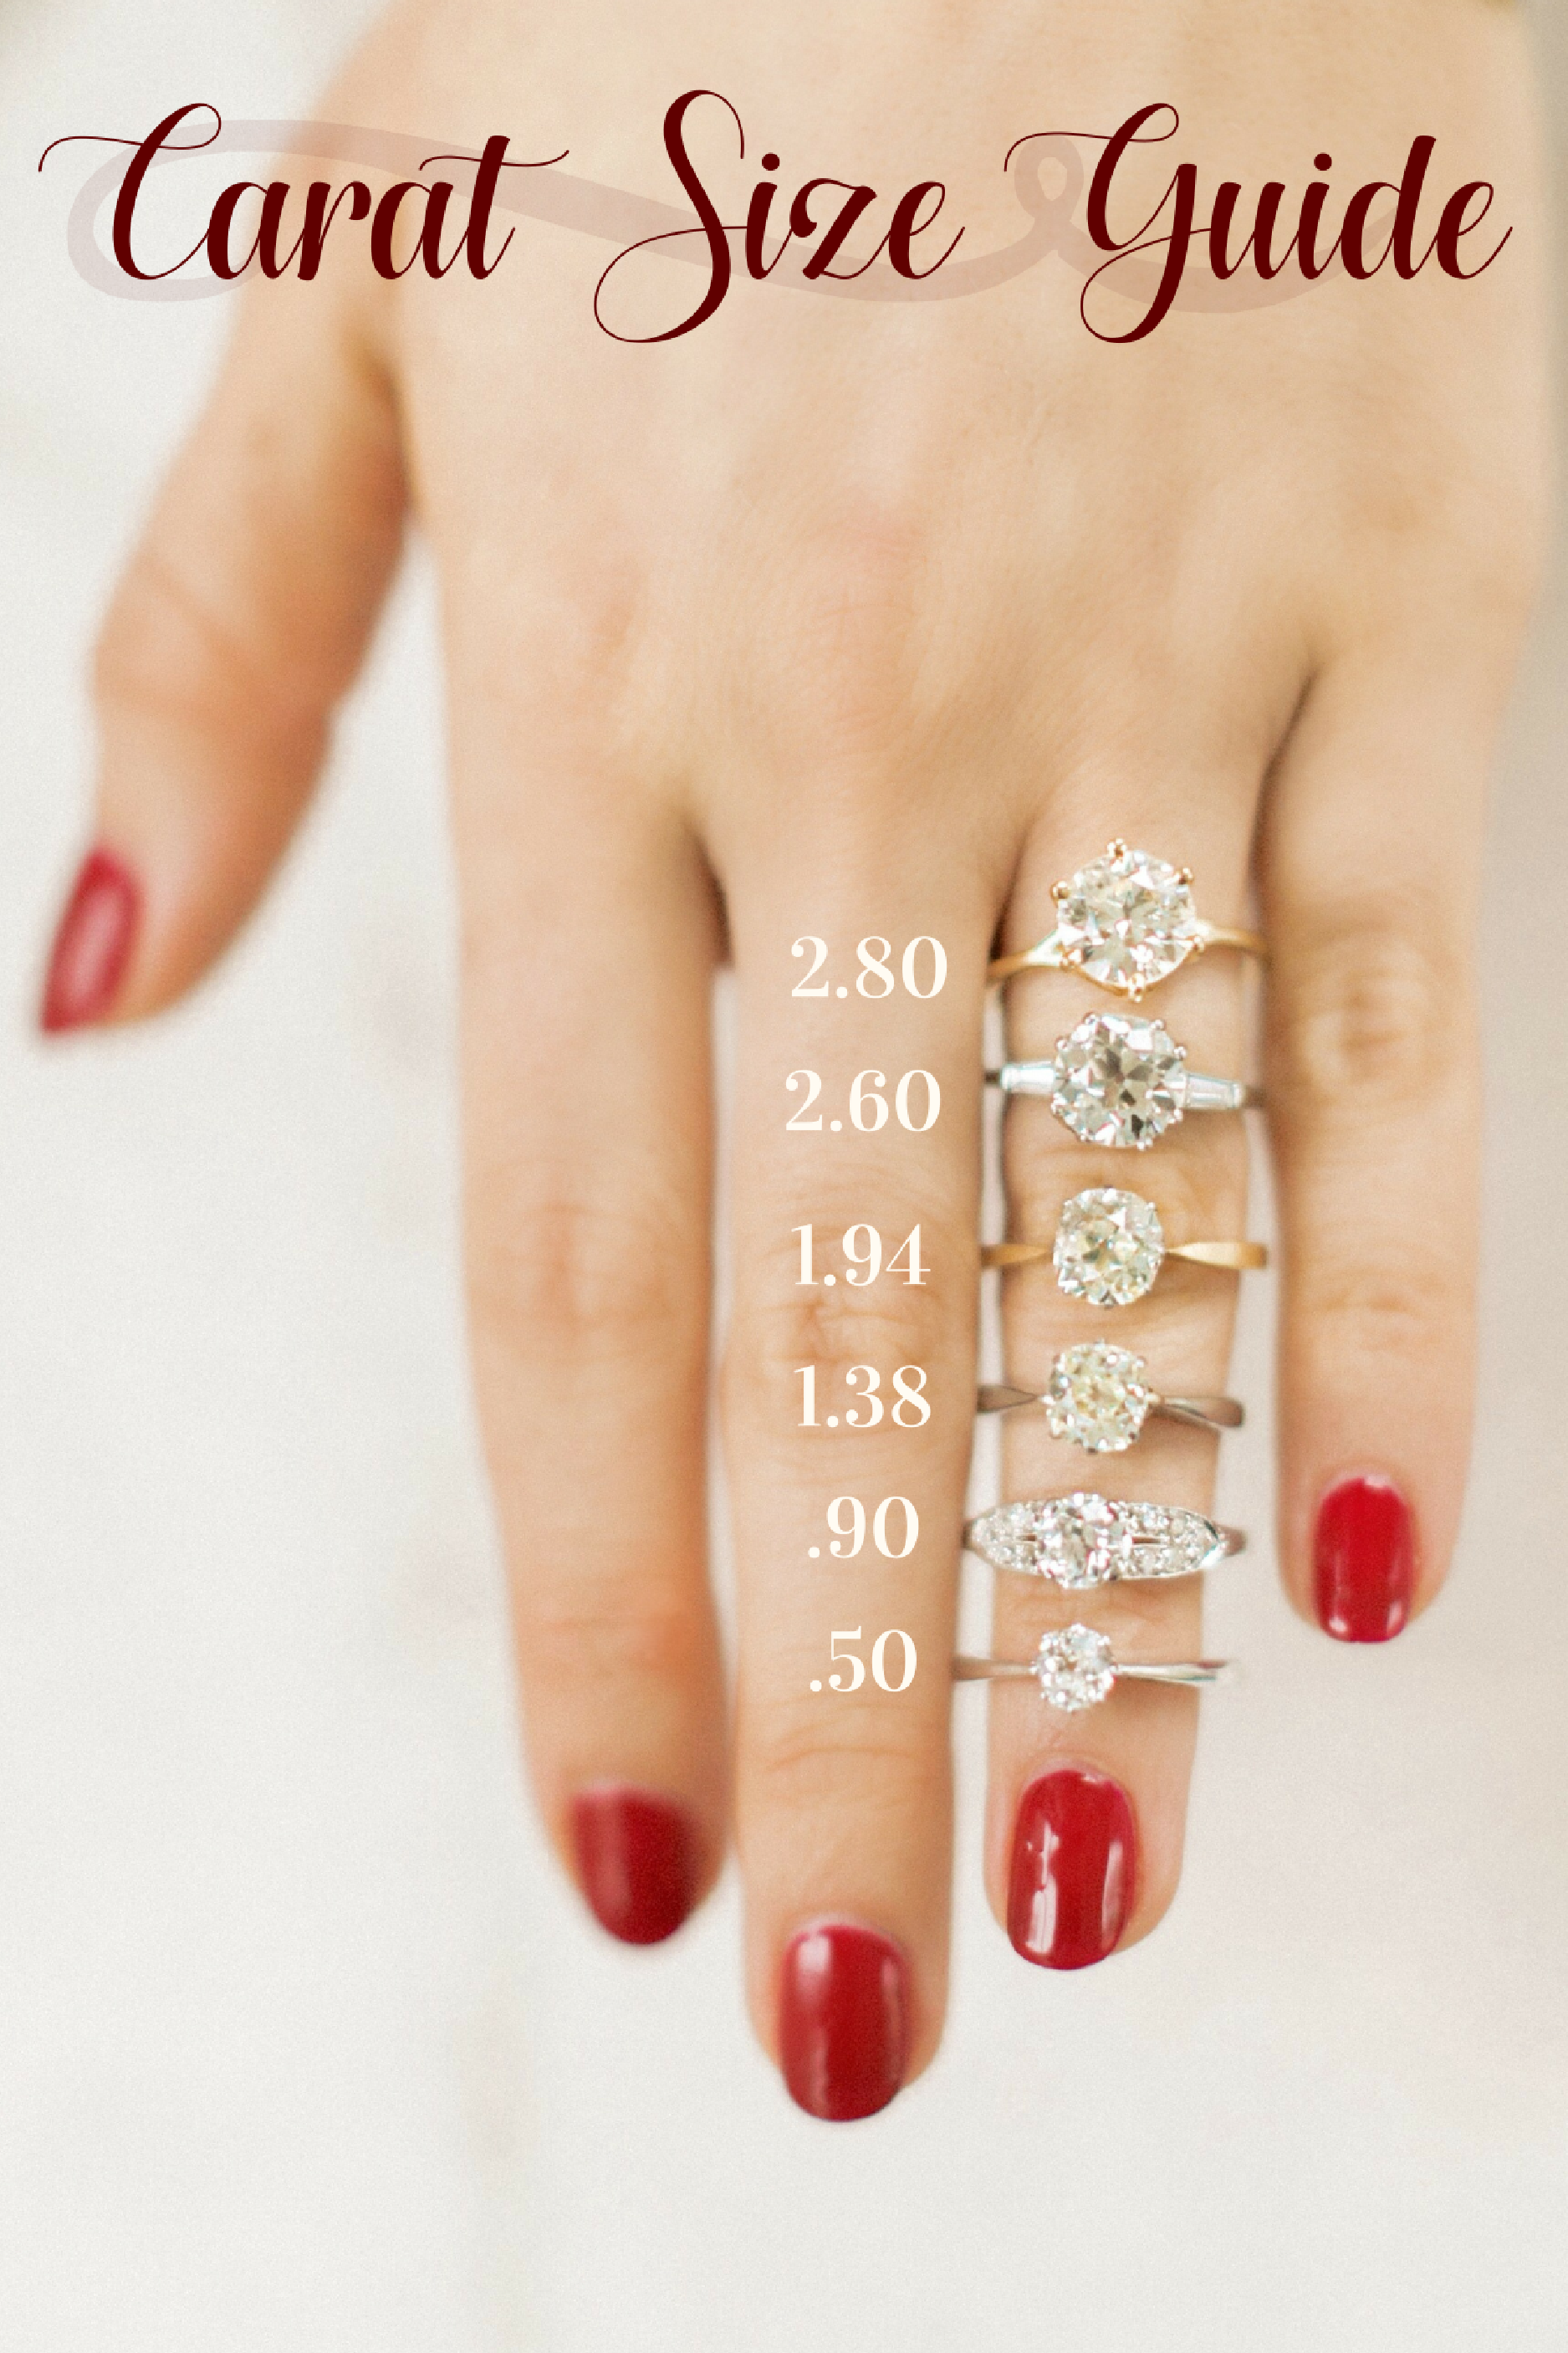 A guide for diamond carat ring size to see which is best